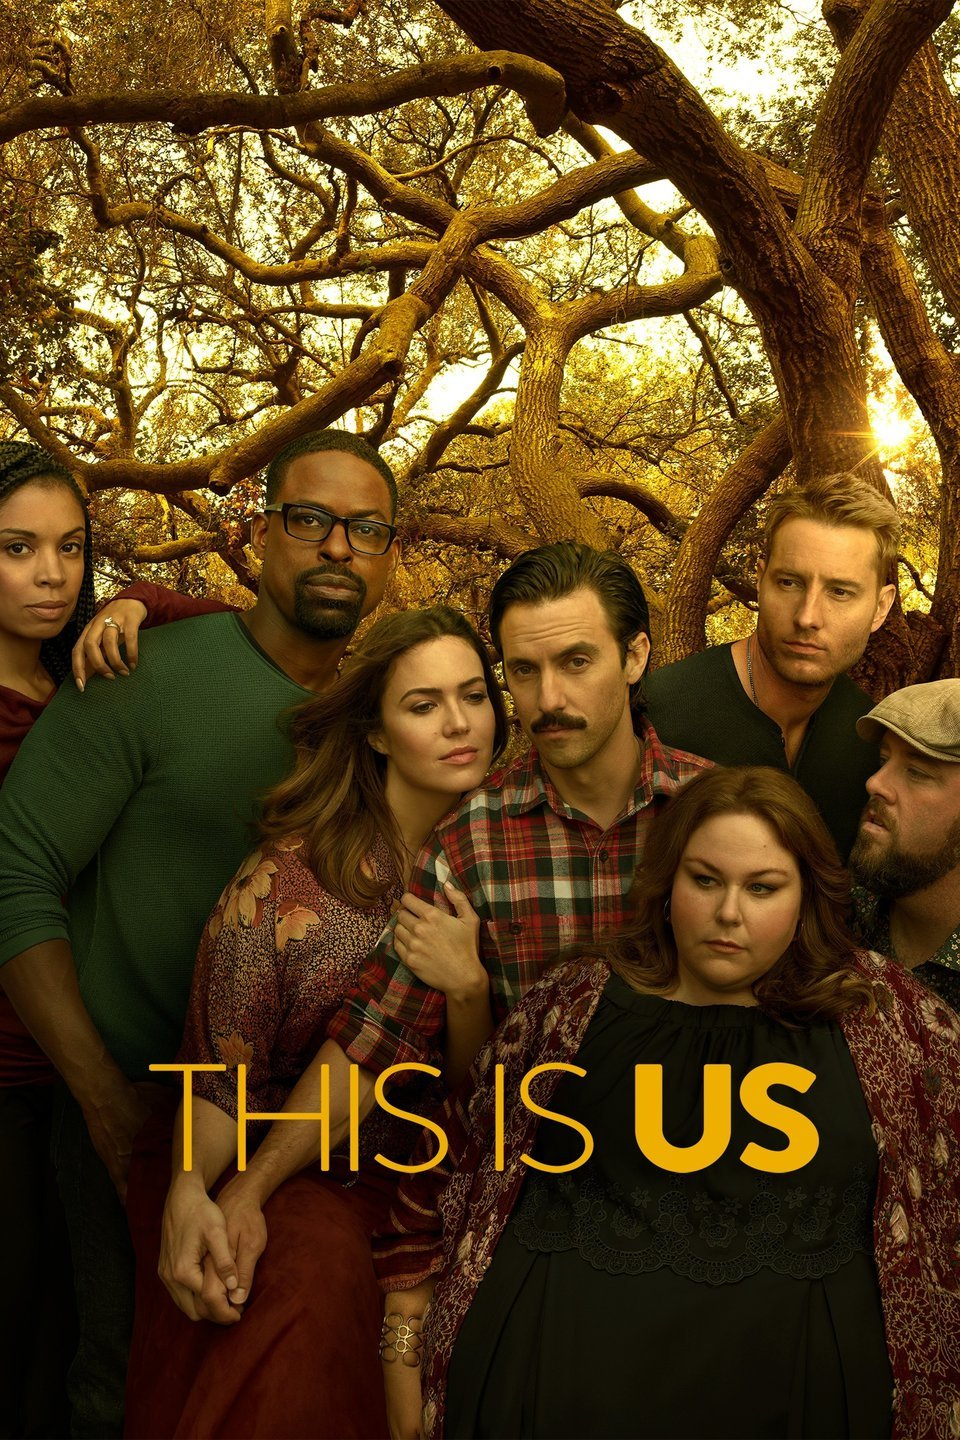 This is Us Season 3 - This season continues to follow the lives of the Pearson family across several time periods, focusing mainly on Jack's time in Vietnam and how him and Rebecca met. This is available on Amazon Prime.